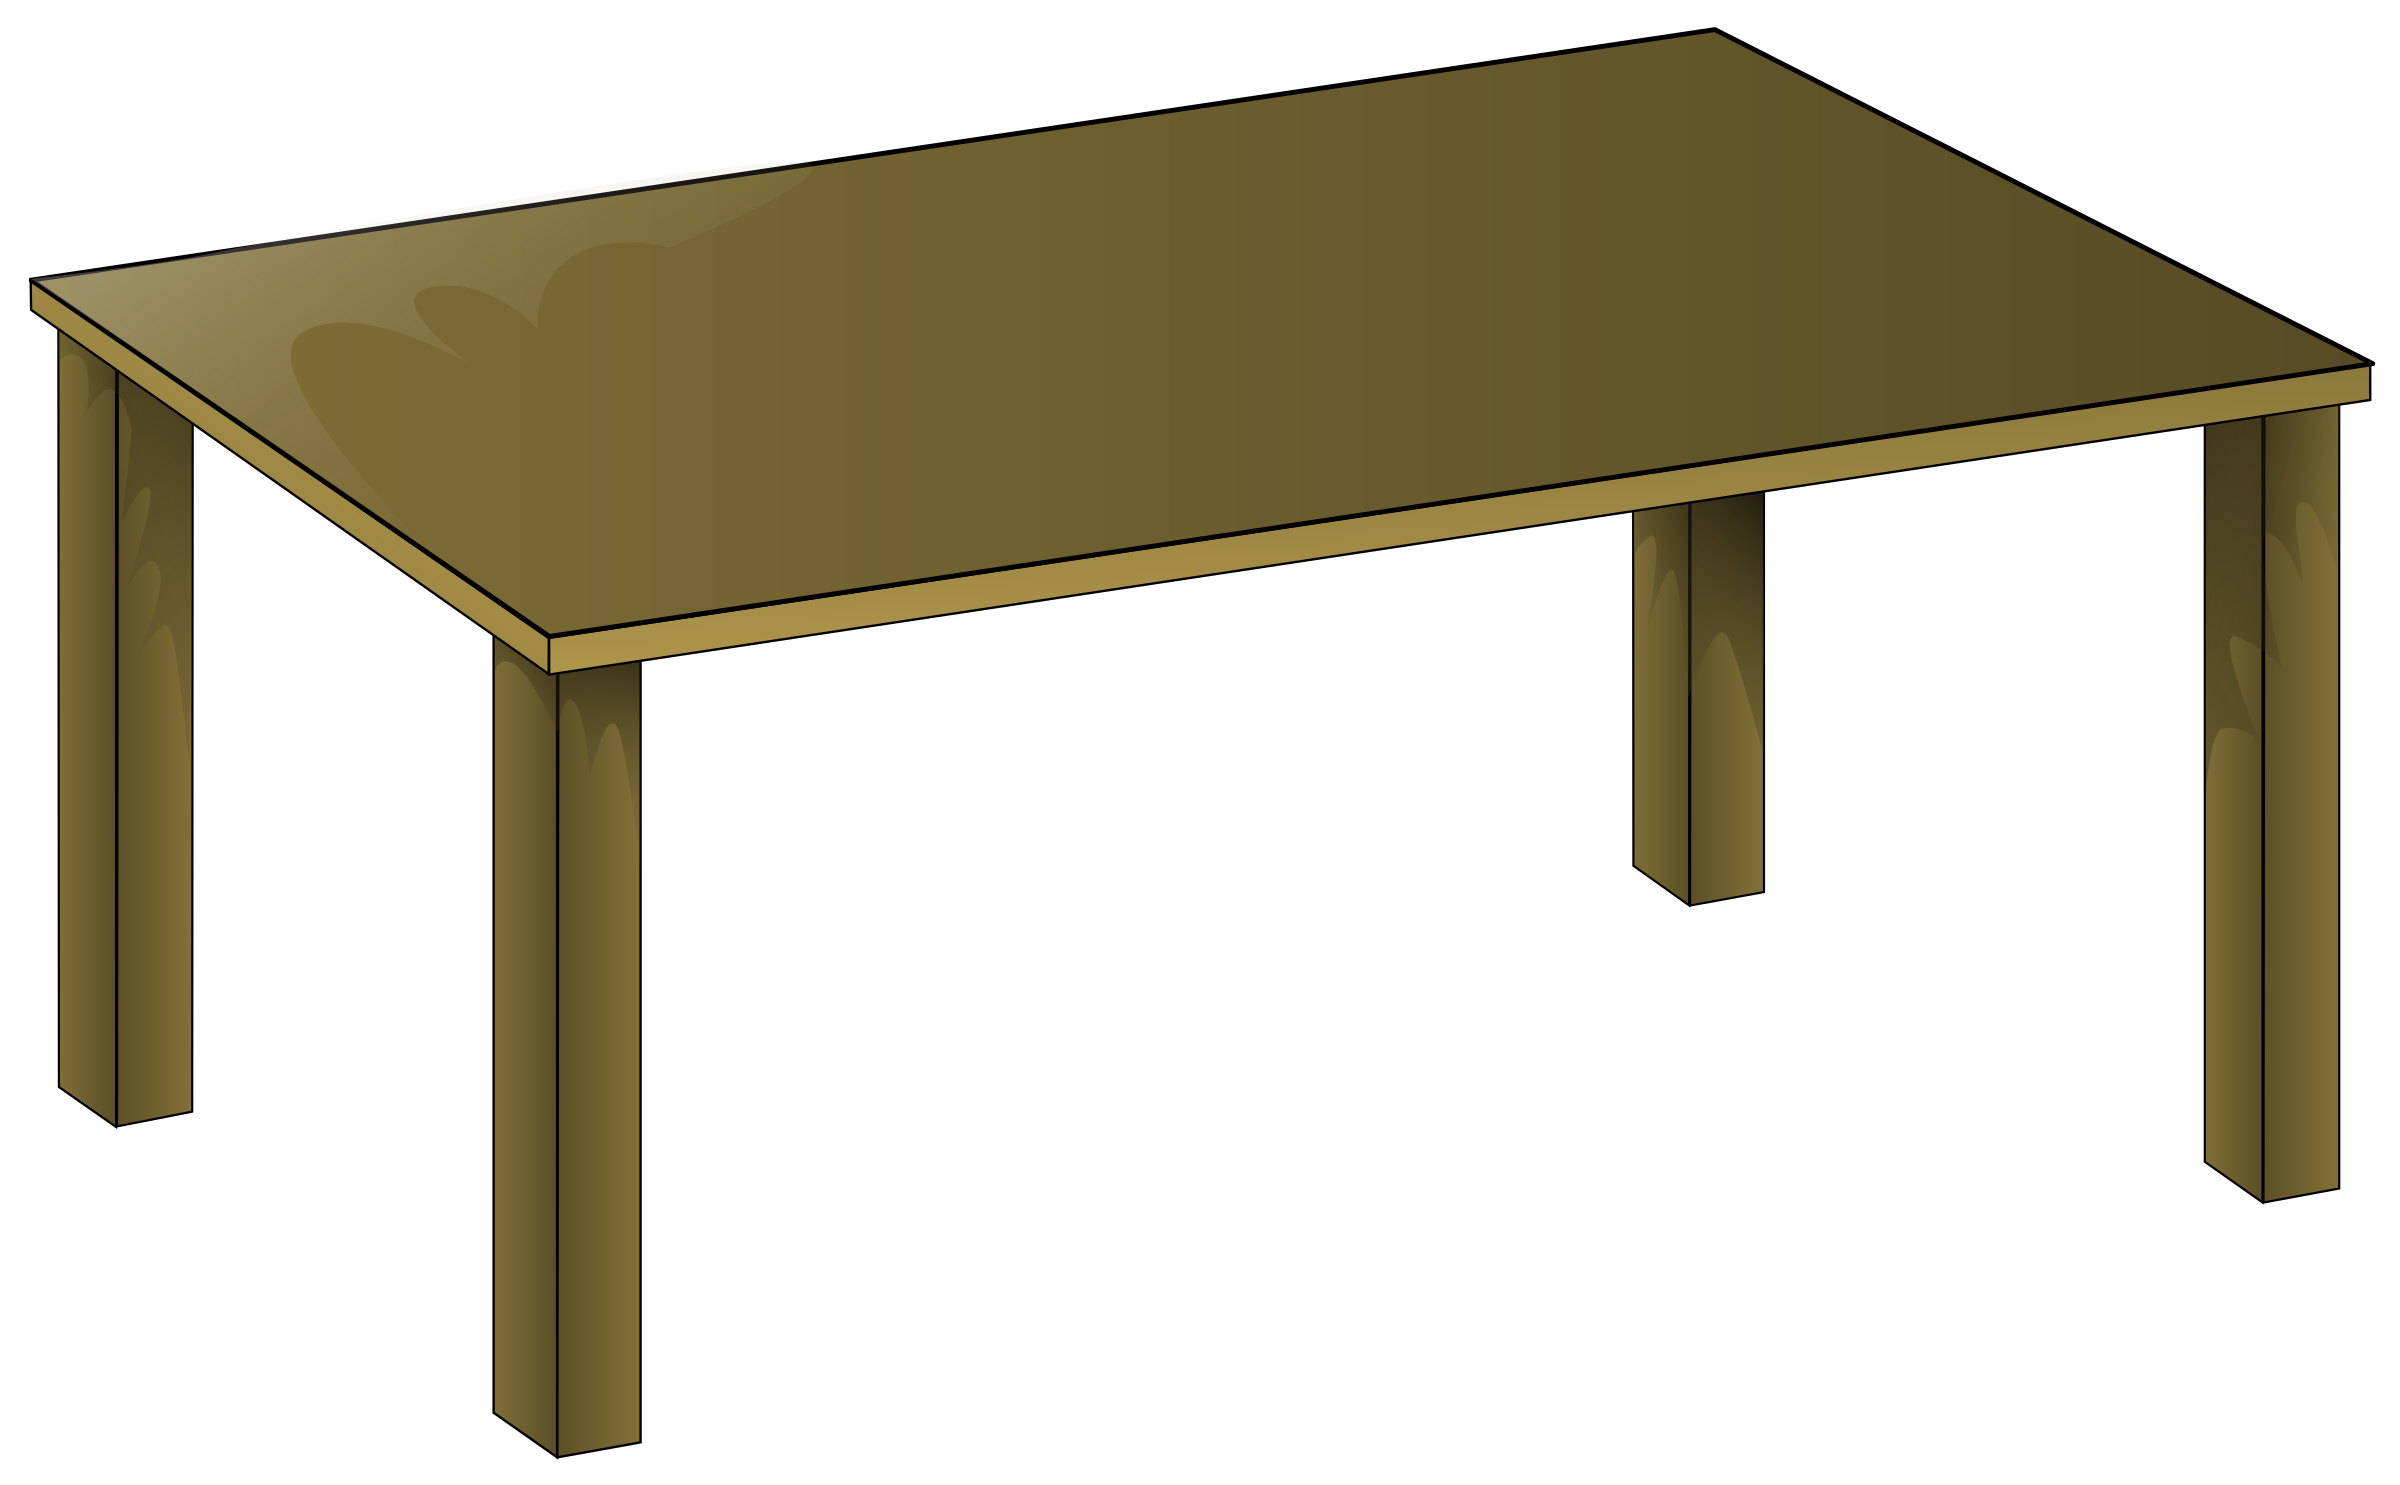 Wooden Table by bpcomp